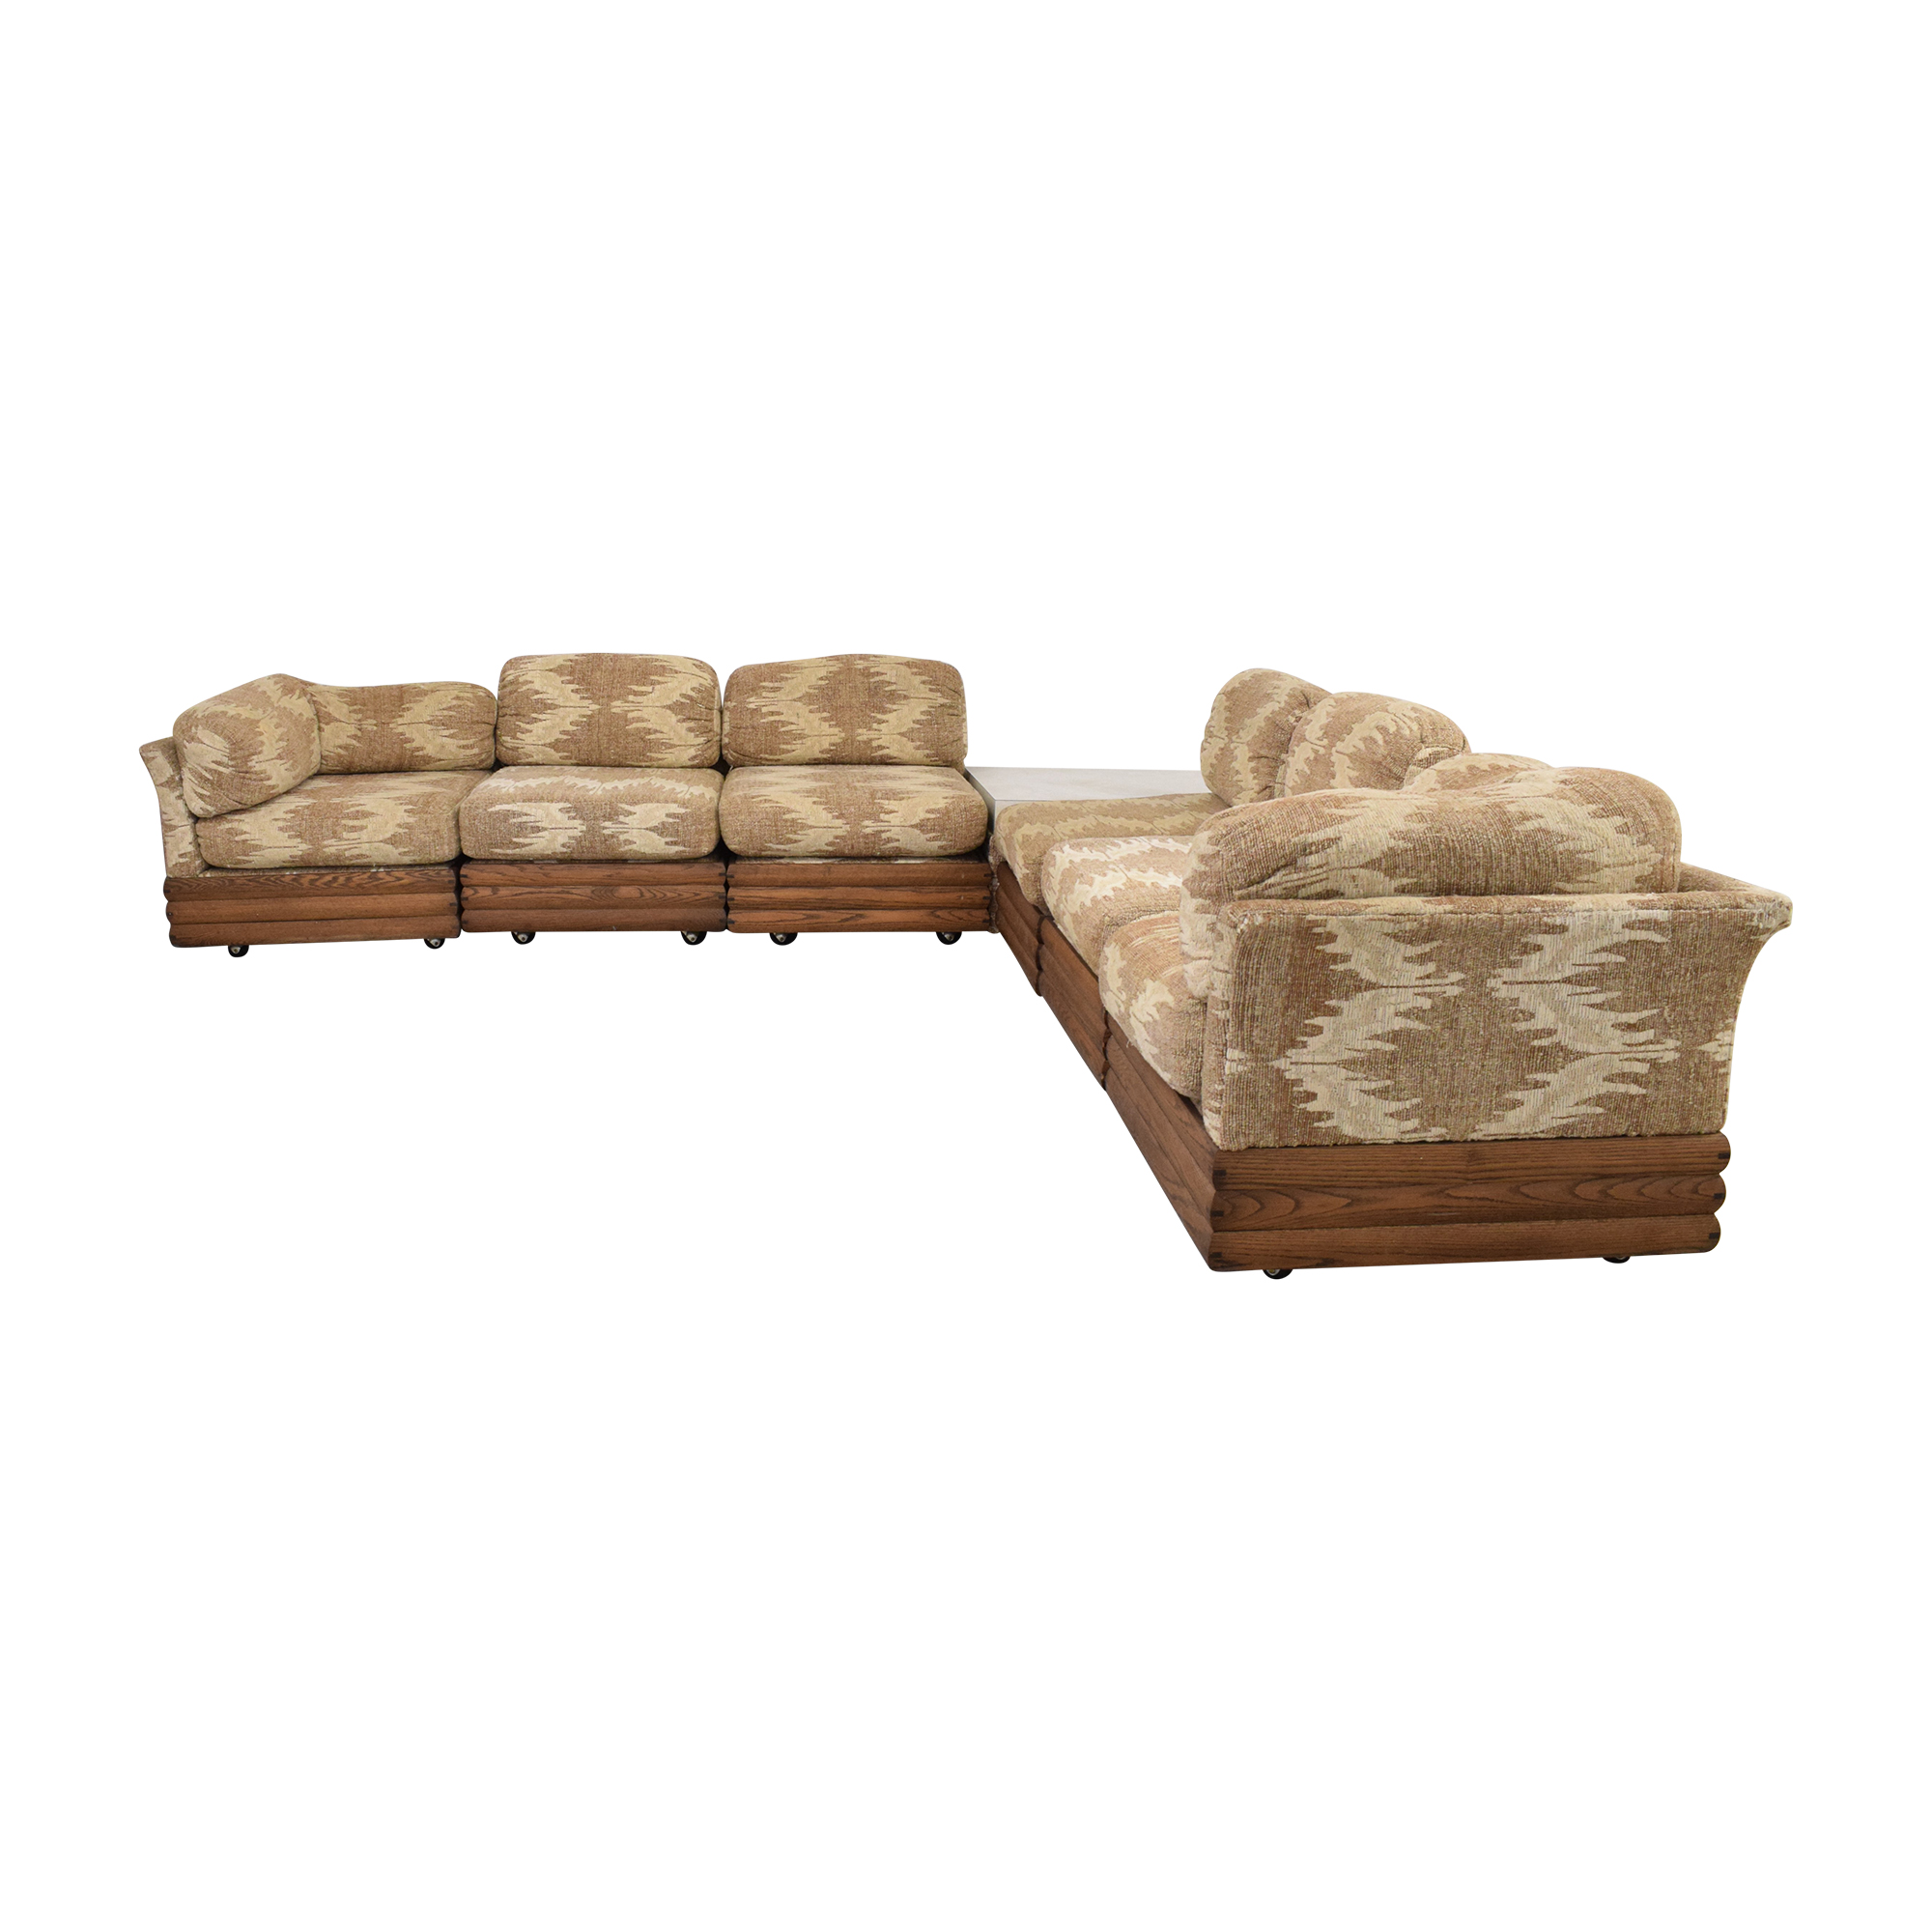 Royal Lounge Sectional Sofa with Corner Table Royal Lounge